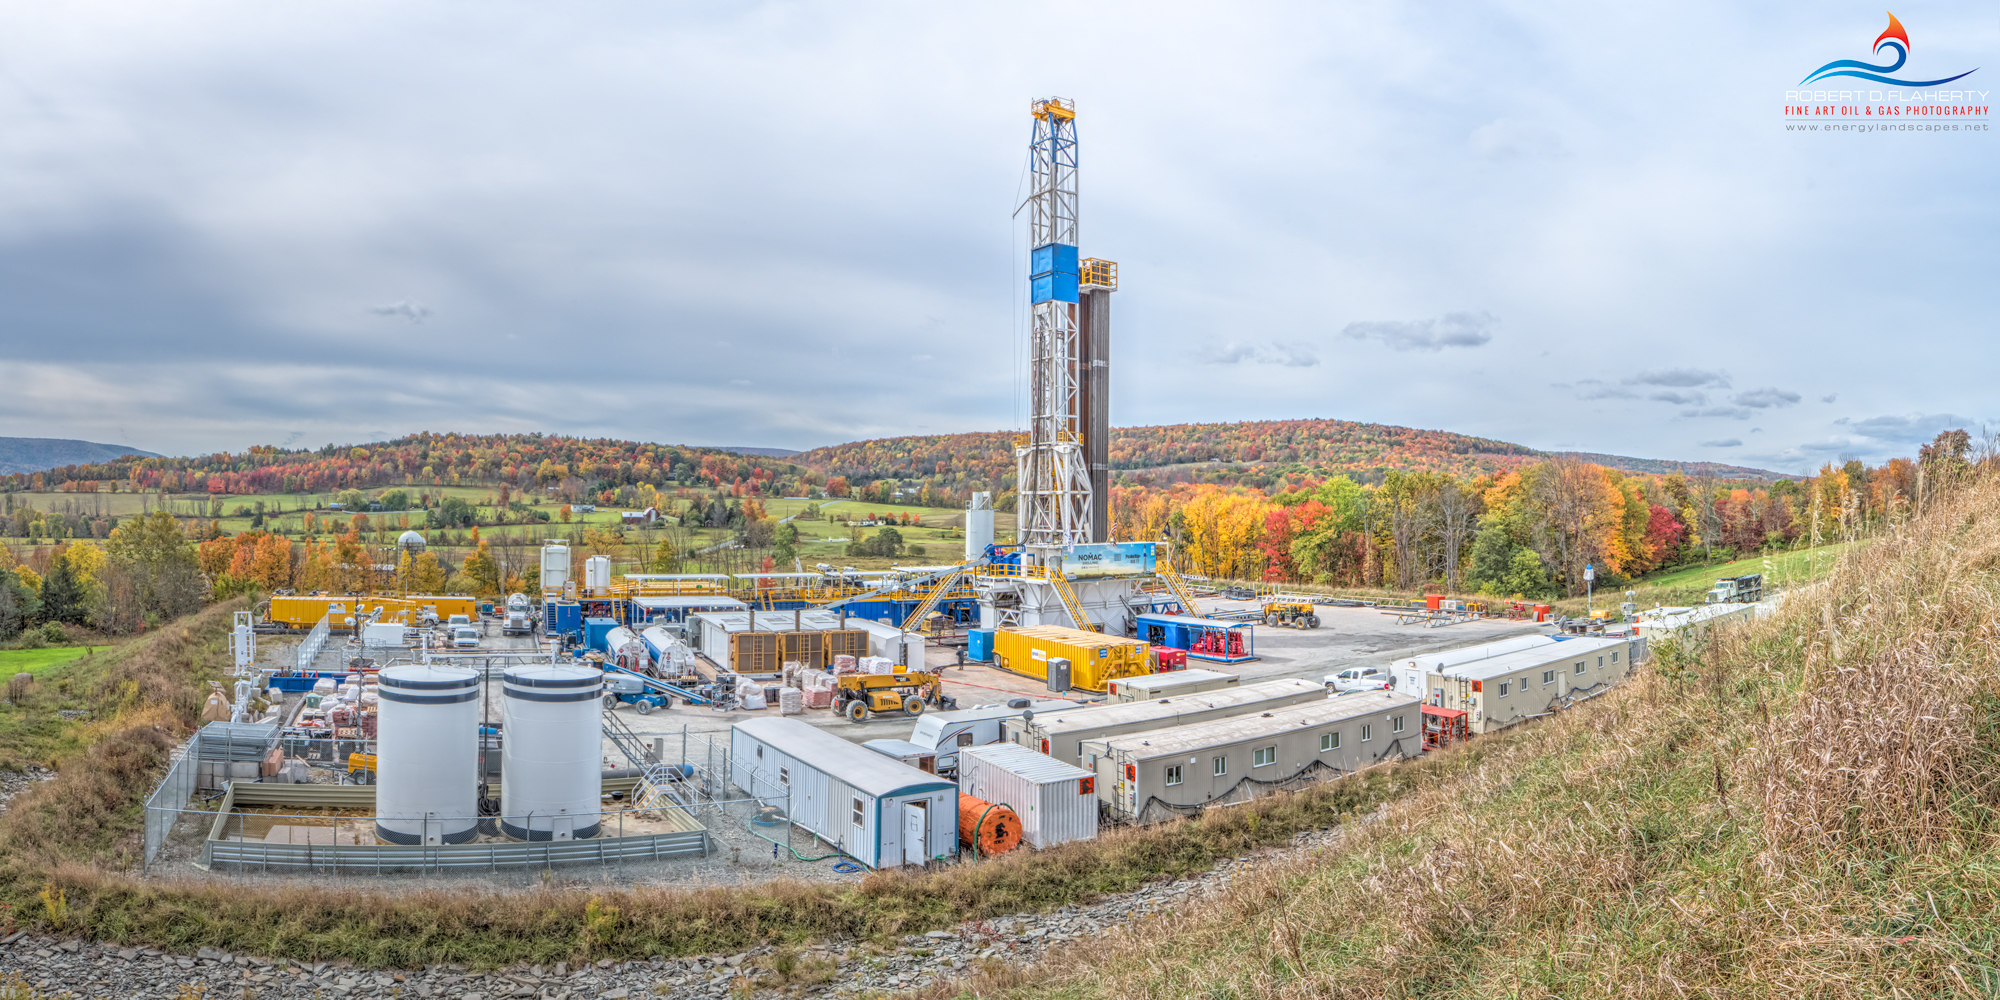 Autumn, Susquehanna County, Pennsylvania, drilling rig, Marcellus Shale, gas well, natural gas, lateral well, fall, Nomac, Nomac Drilling, mural, October, panorama